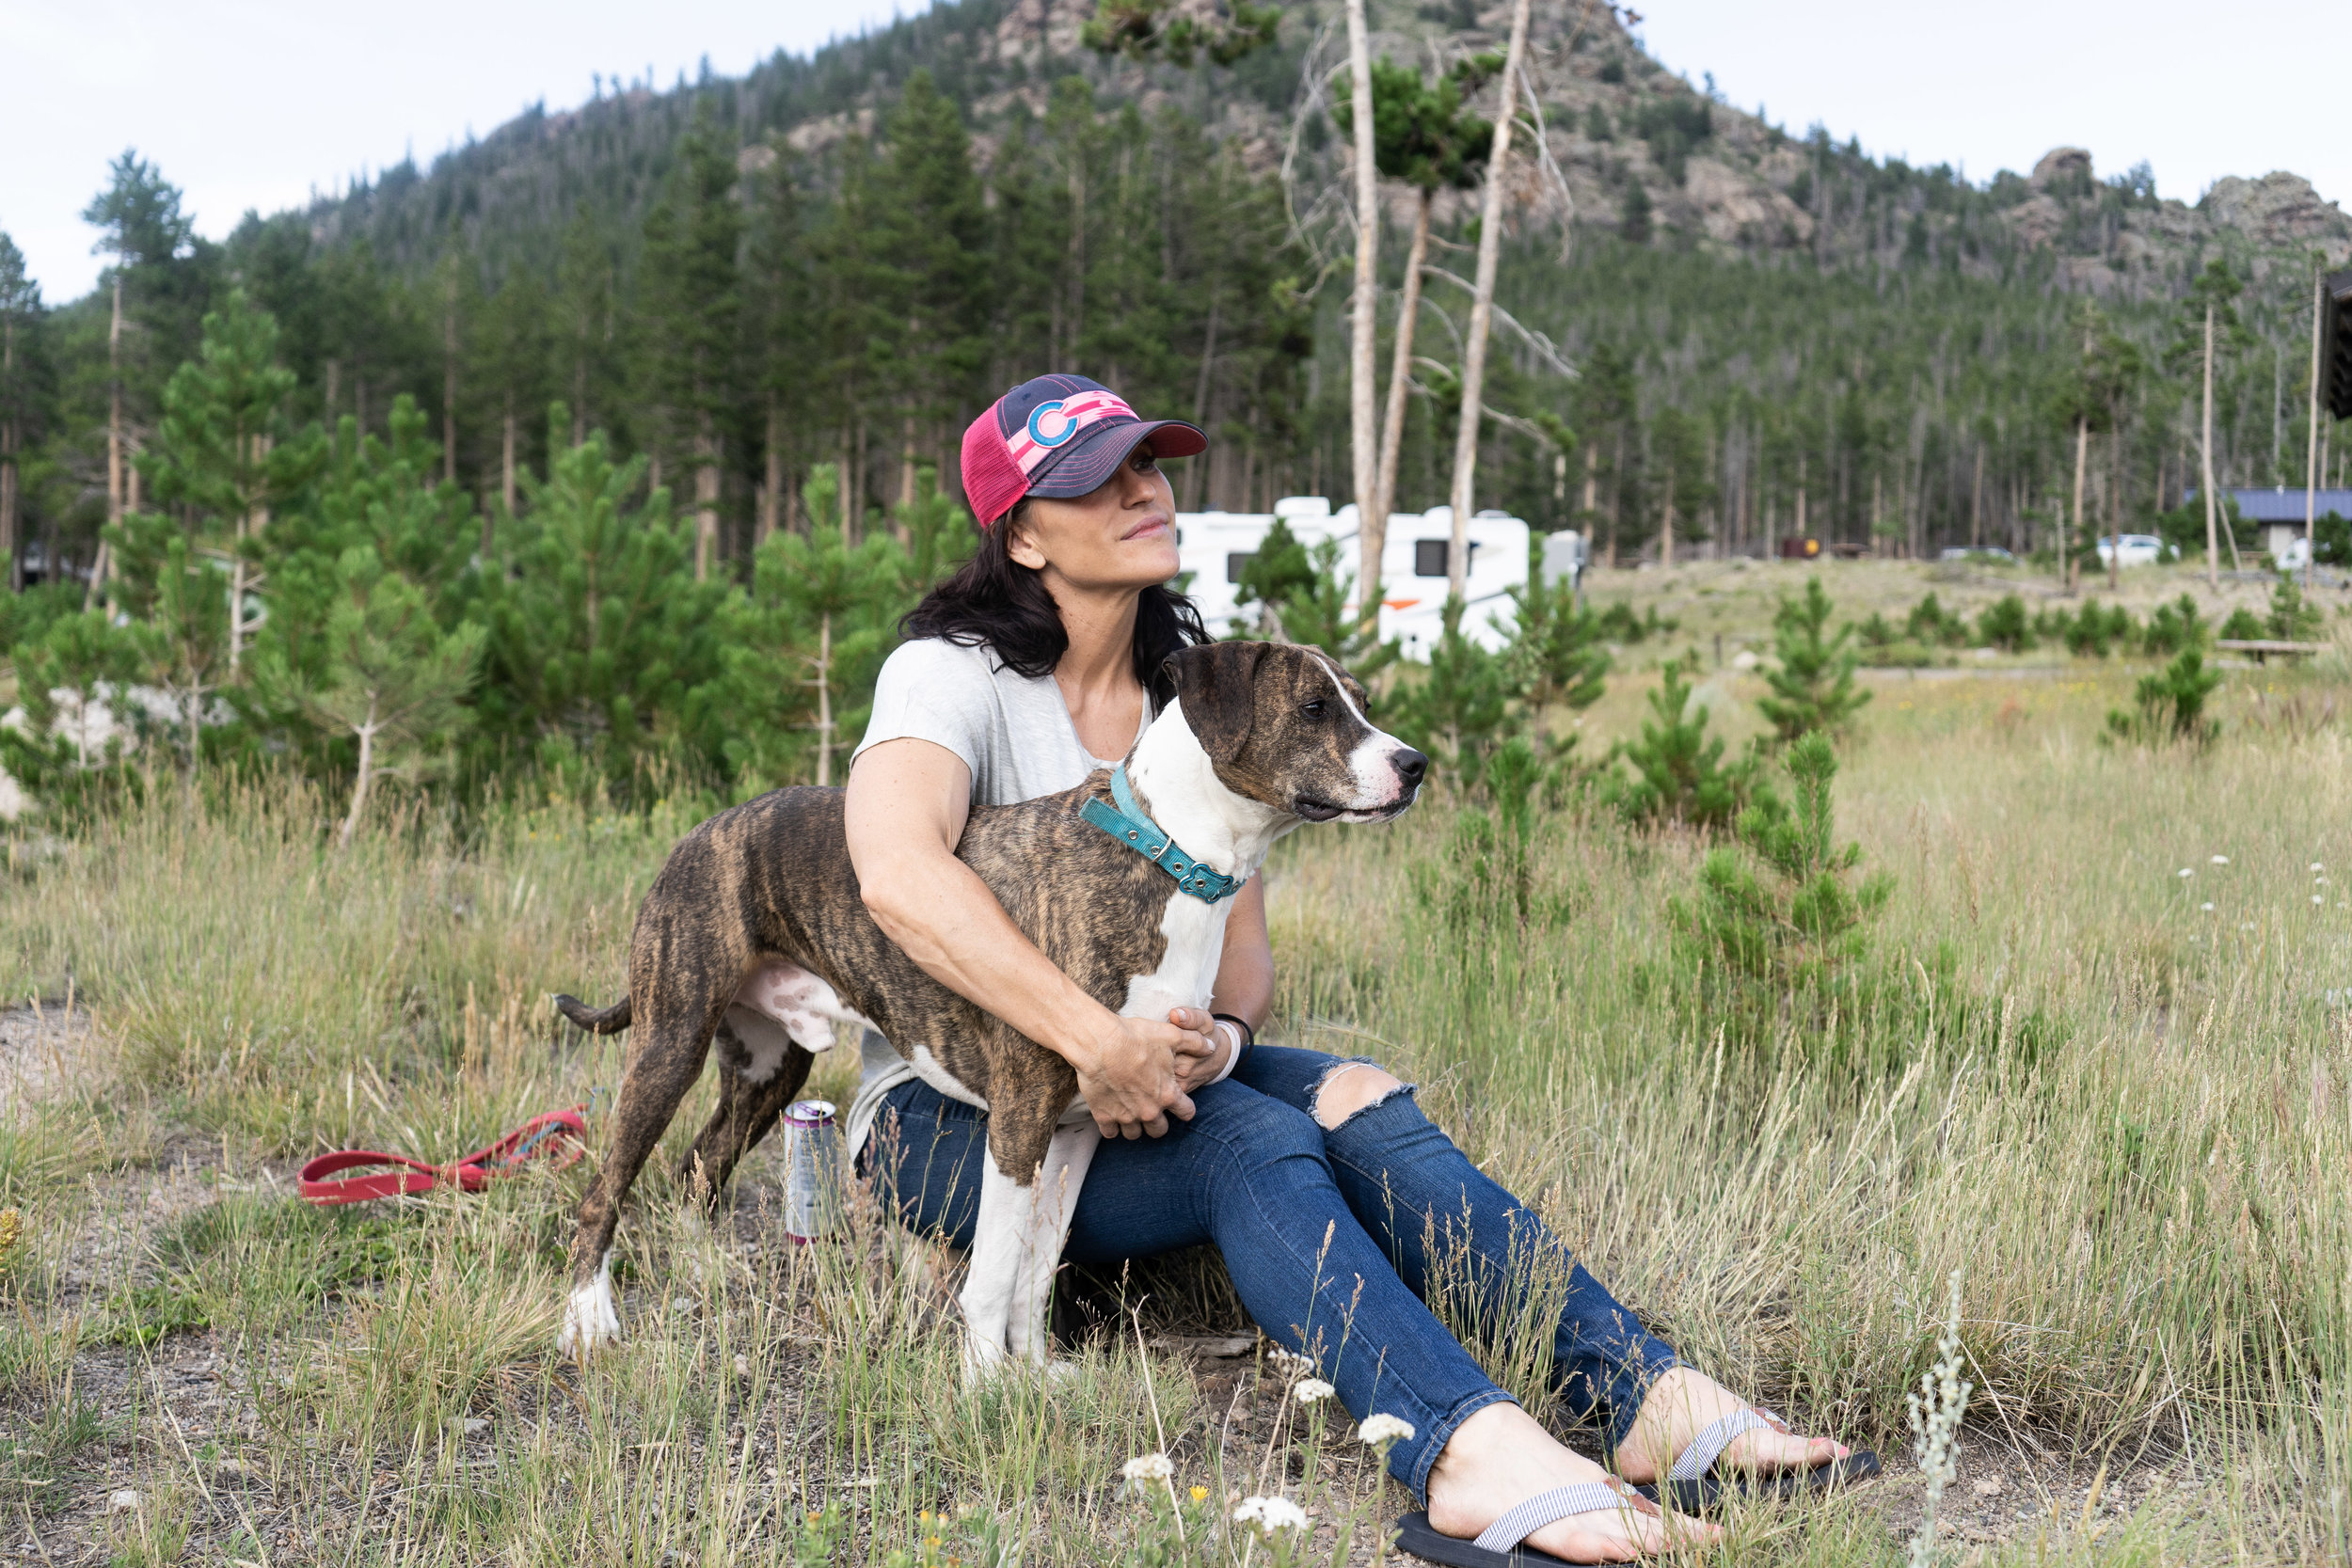 Tracy and Marley. Rocky Mountain National Park, Glacier Basin Campground 2018